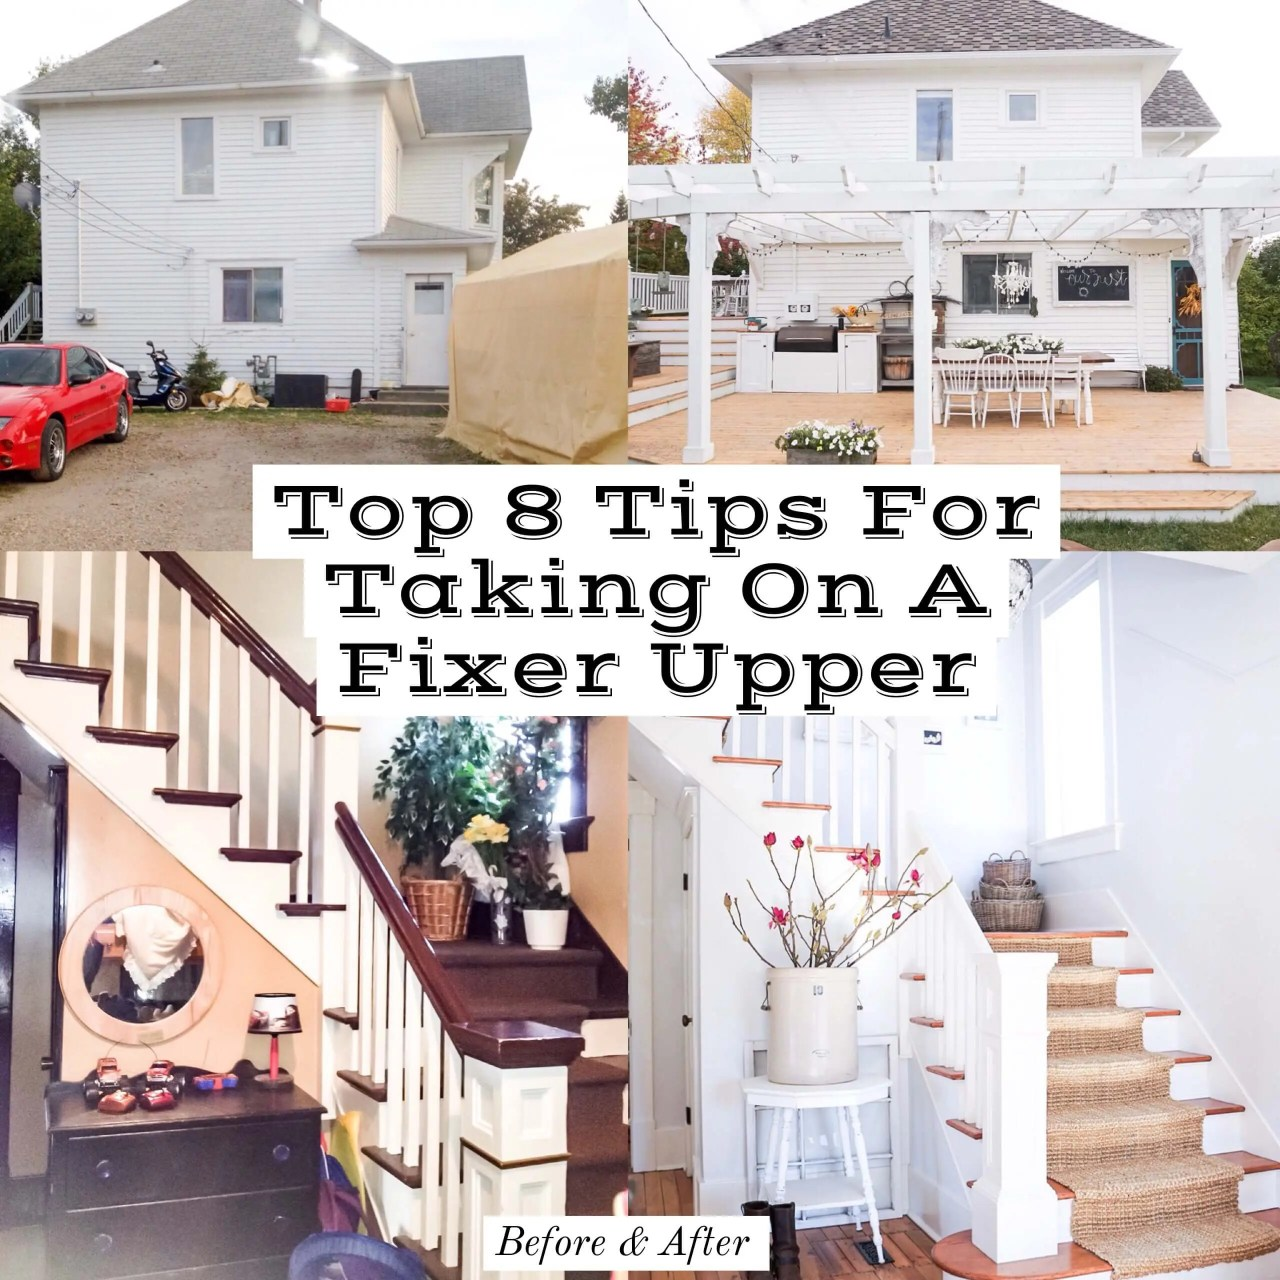 Top 8 Tips For Taking On A Fixer Upper